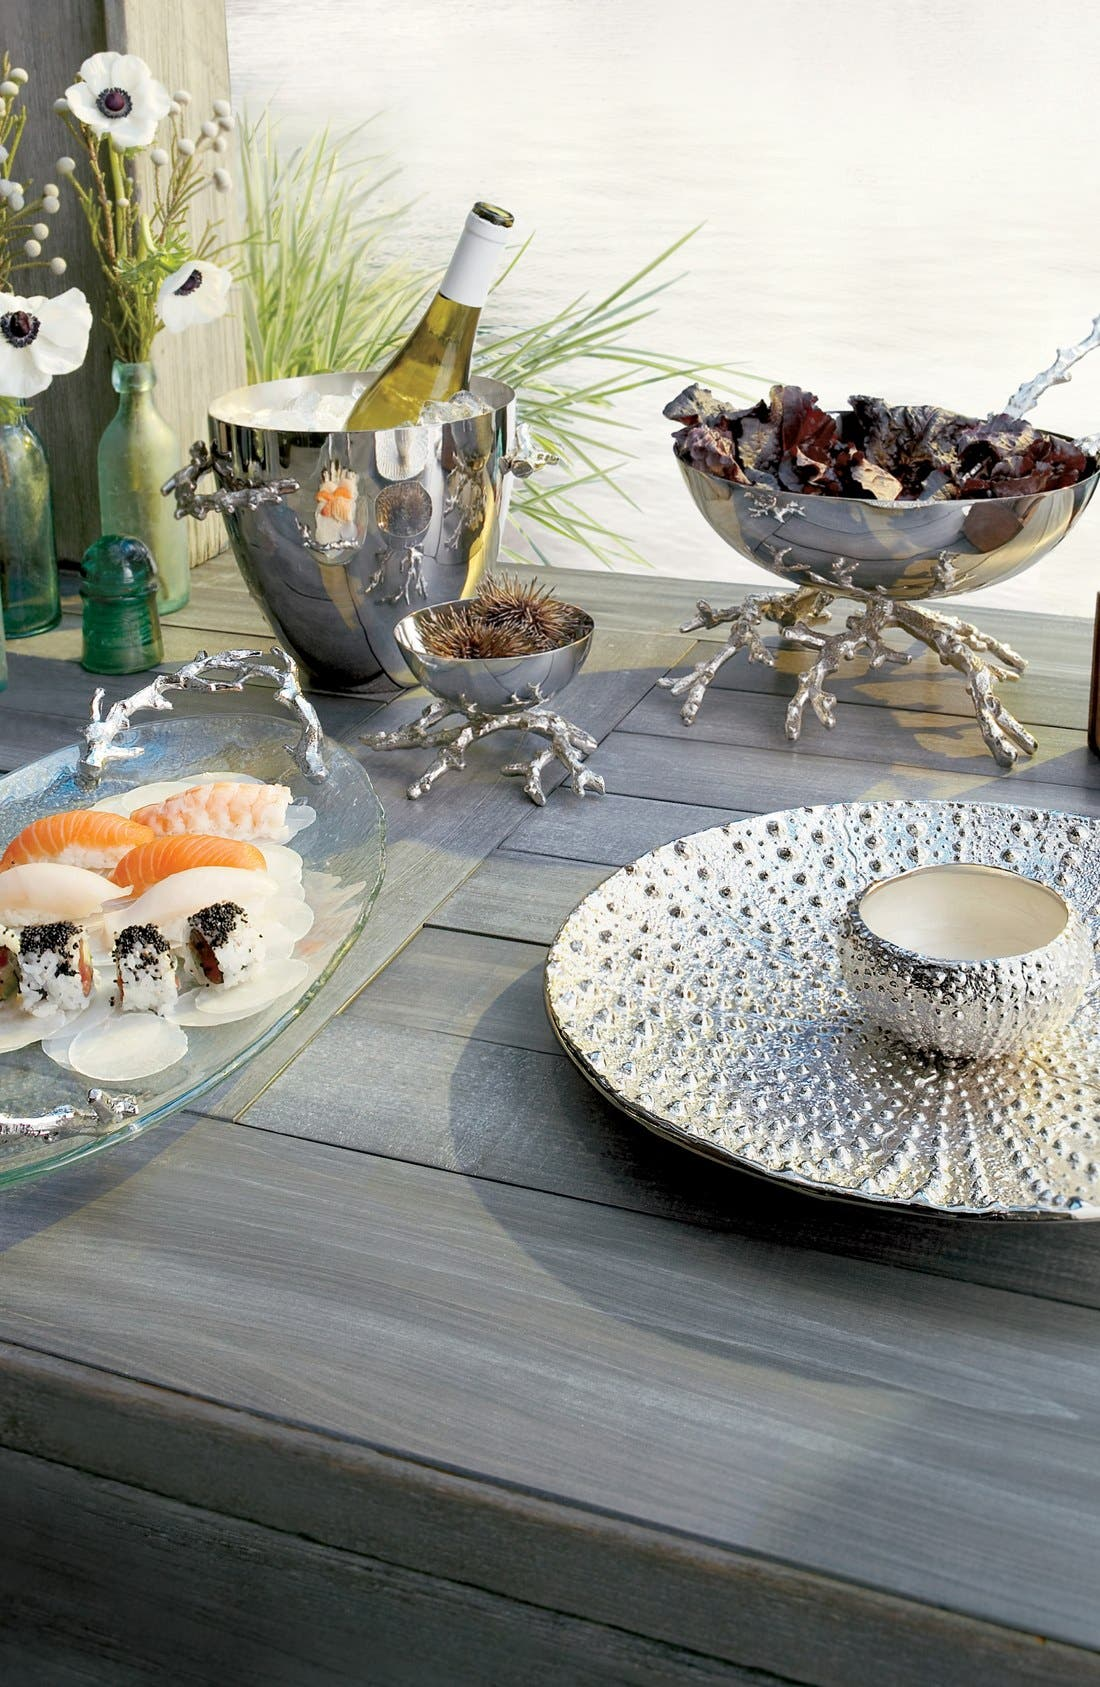 Alternate Image 2  - Michael Aram 'Ocean Sea Urchin' Platter